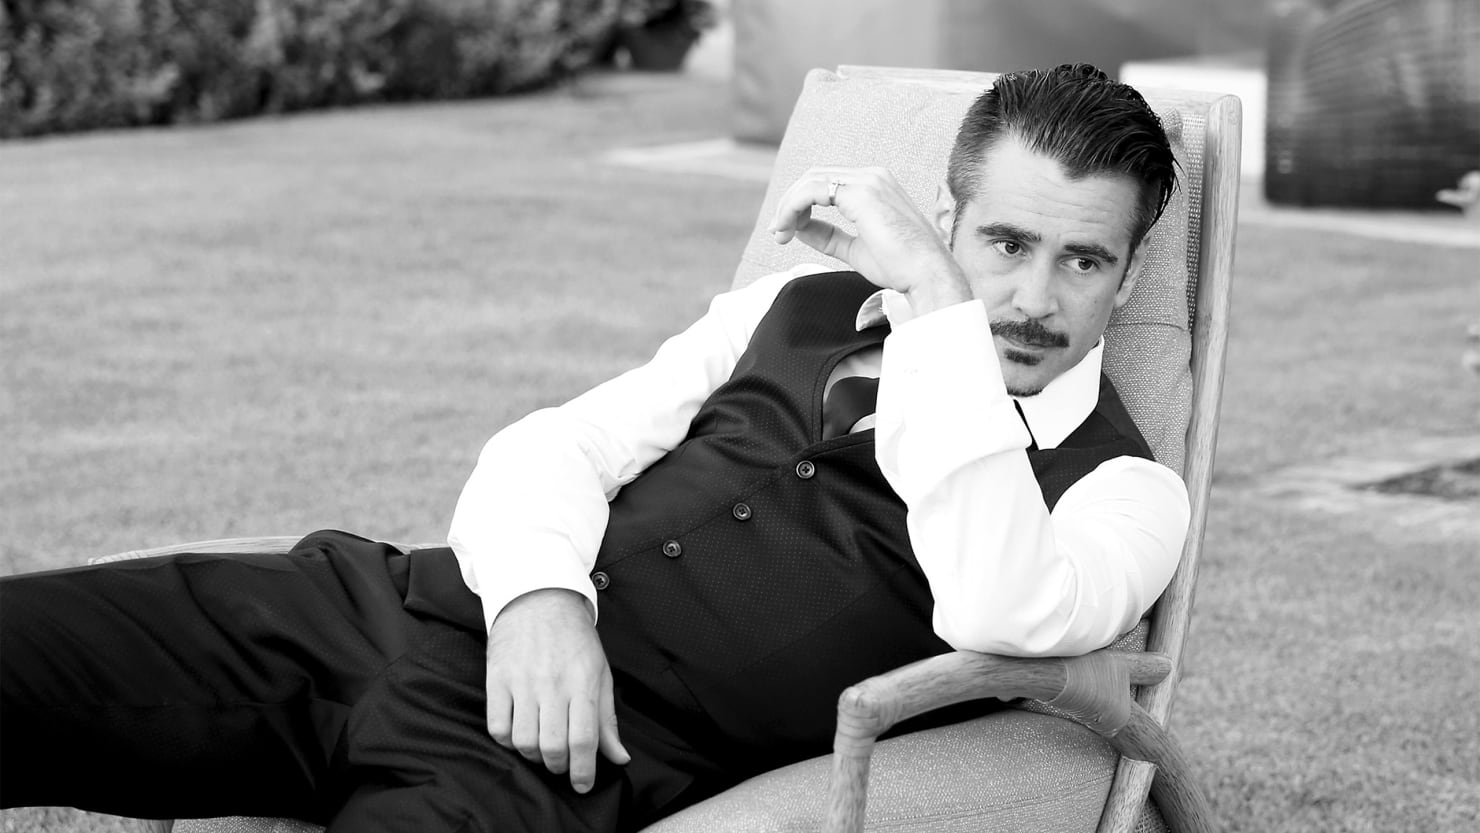 Colin Farrell, Hopeless Romantic: 'F-ck Anyone Else Who Says That's Bullsh-t'